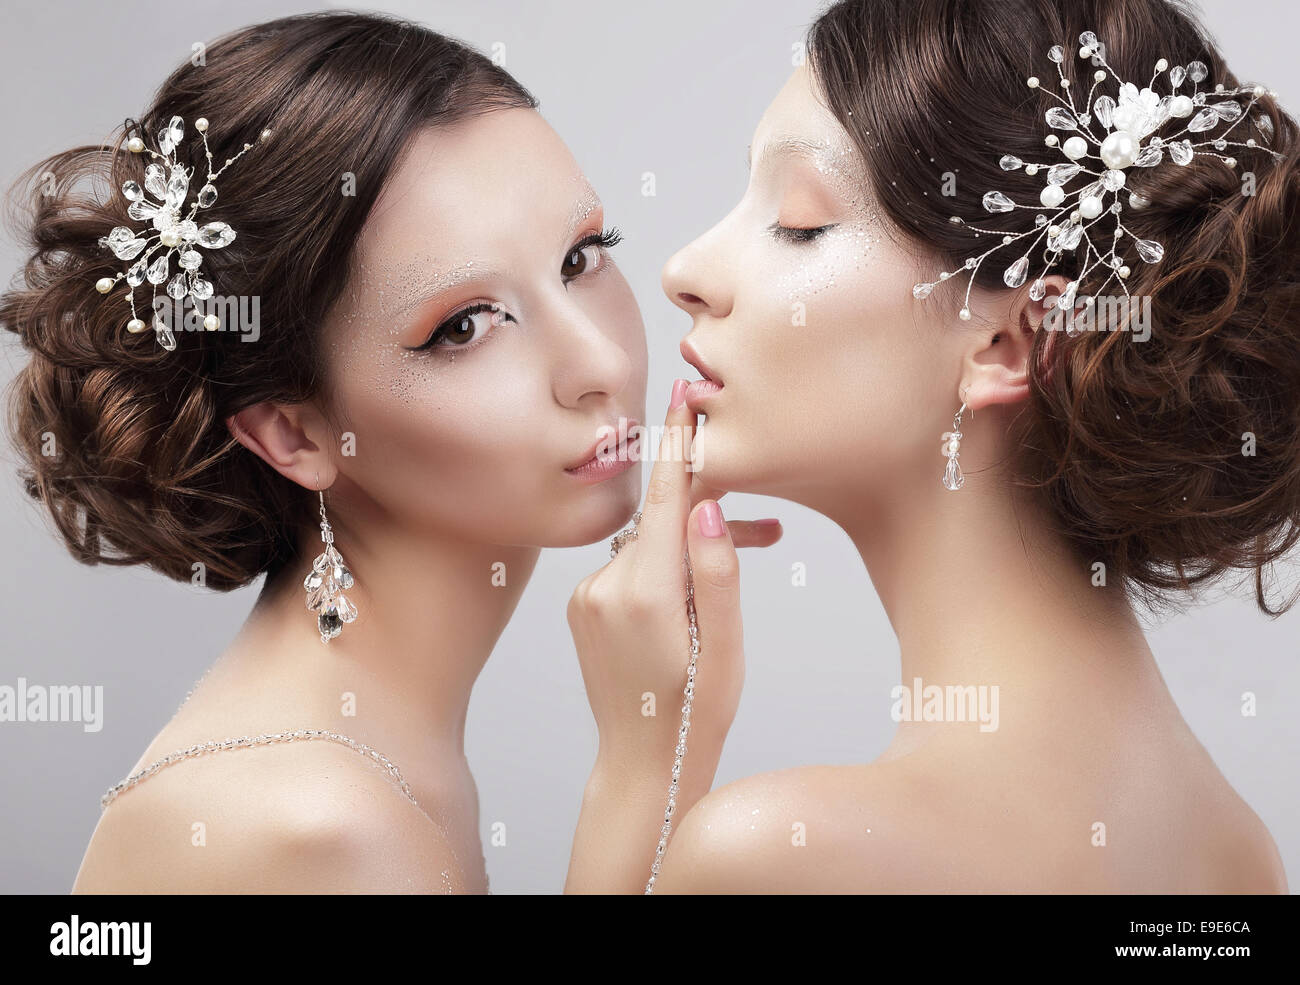 Sensuality. Two Women Fashion Models with Trendy Make-up - Stock Image